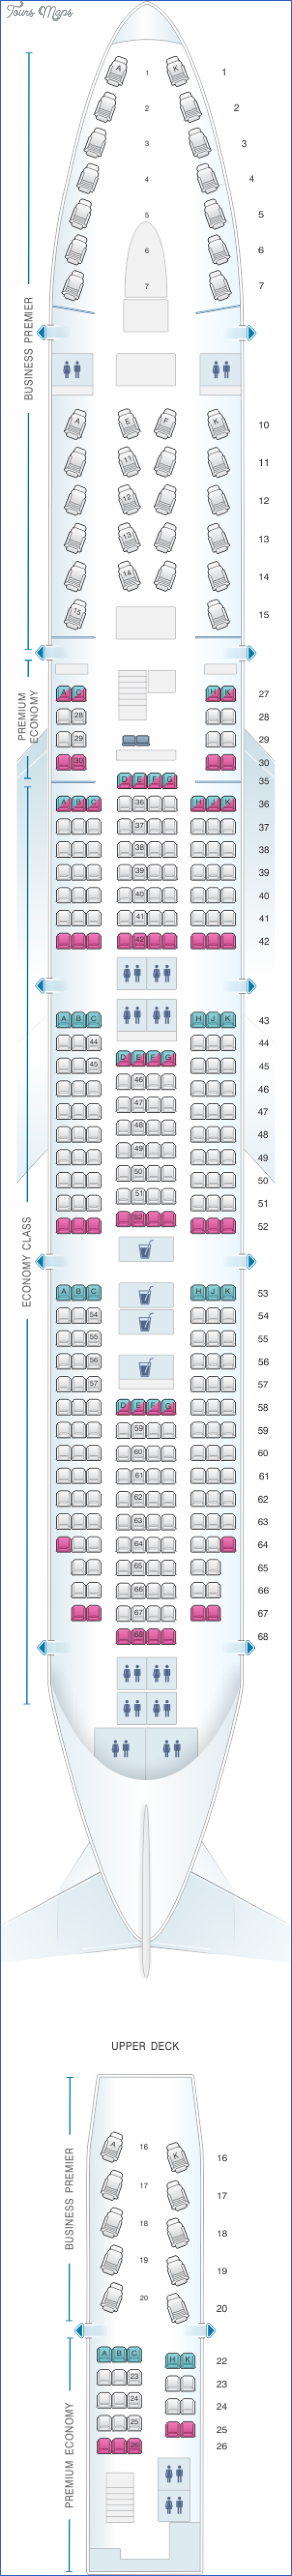 89 air new zealand b747 400 Air New Zealand Seat Map